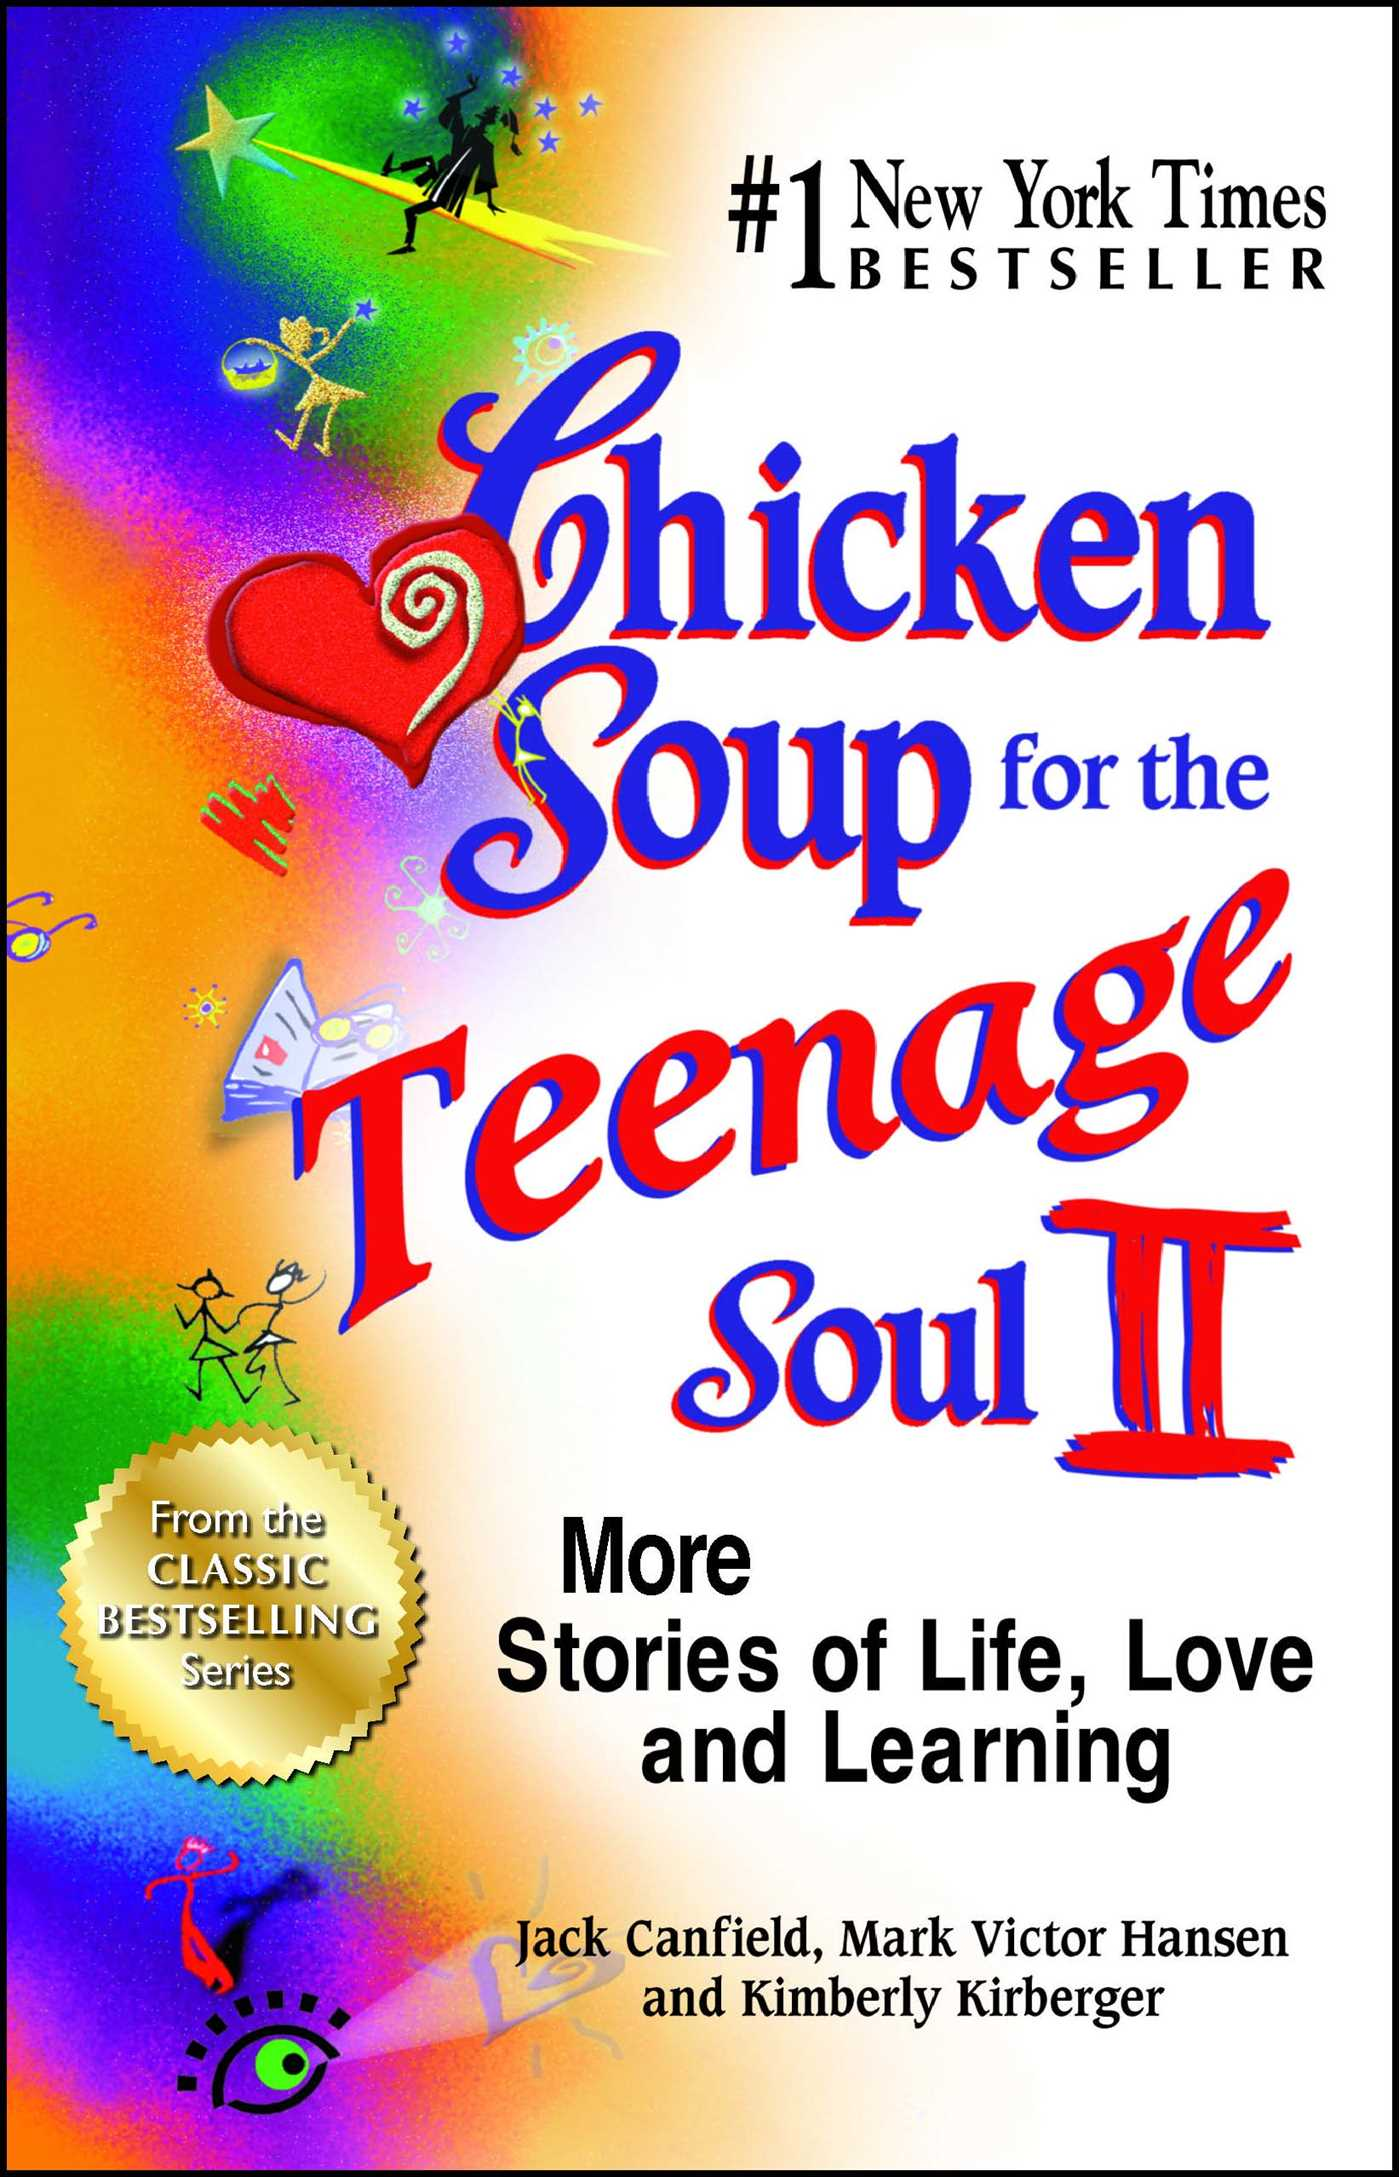 Chicken soup for the teenage soul ii 9781623611224 hr